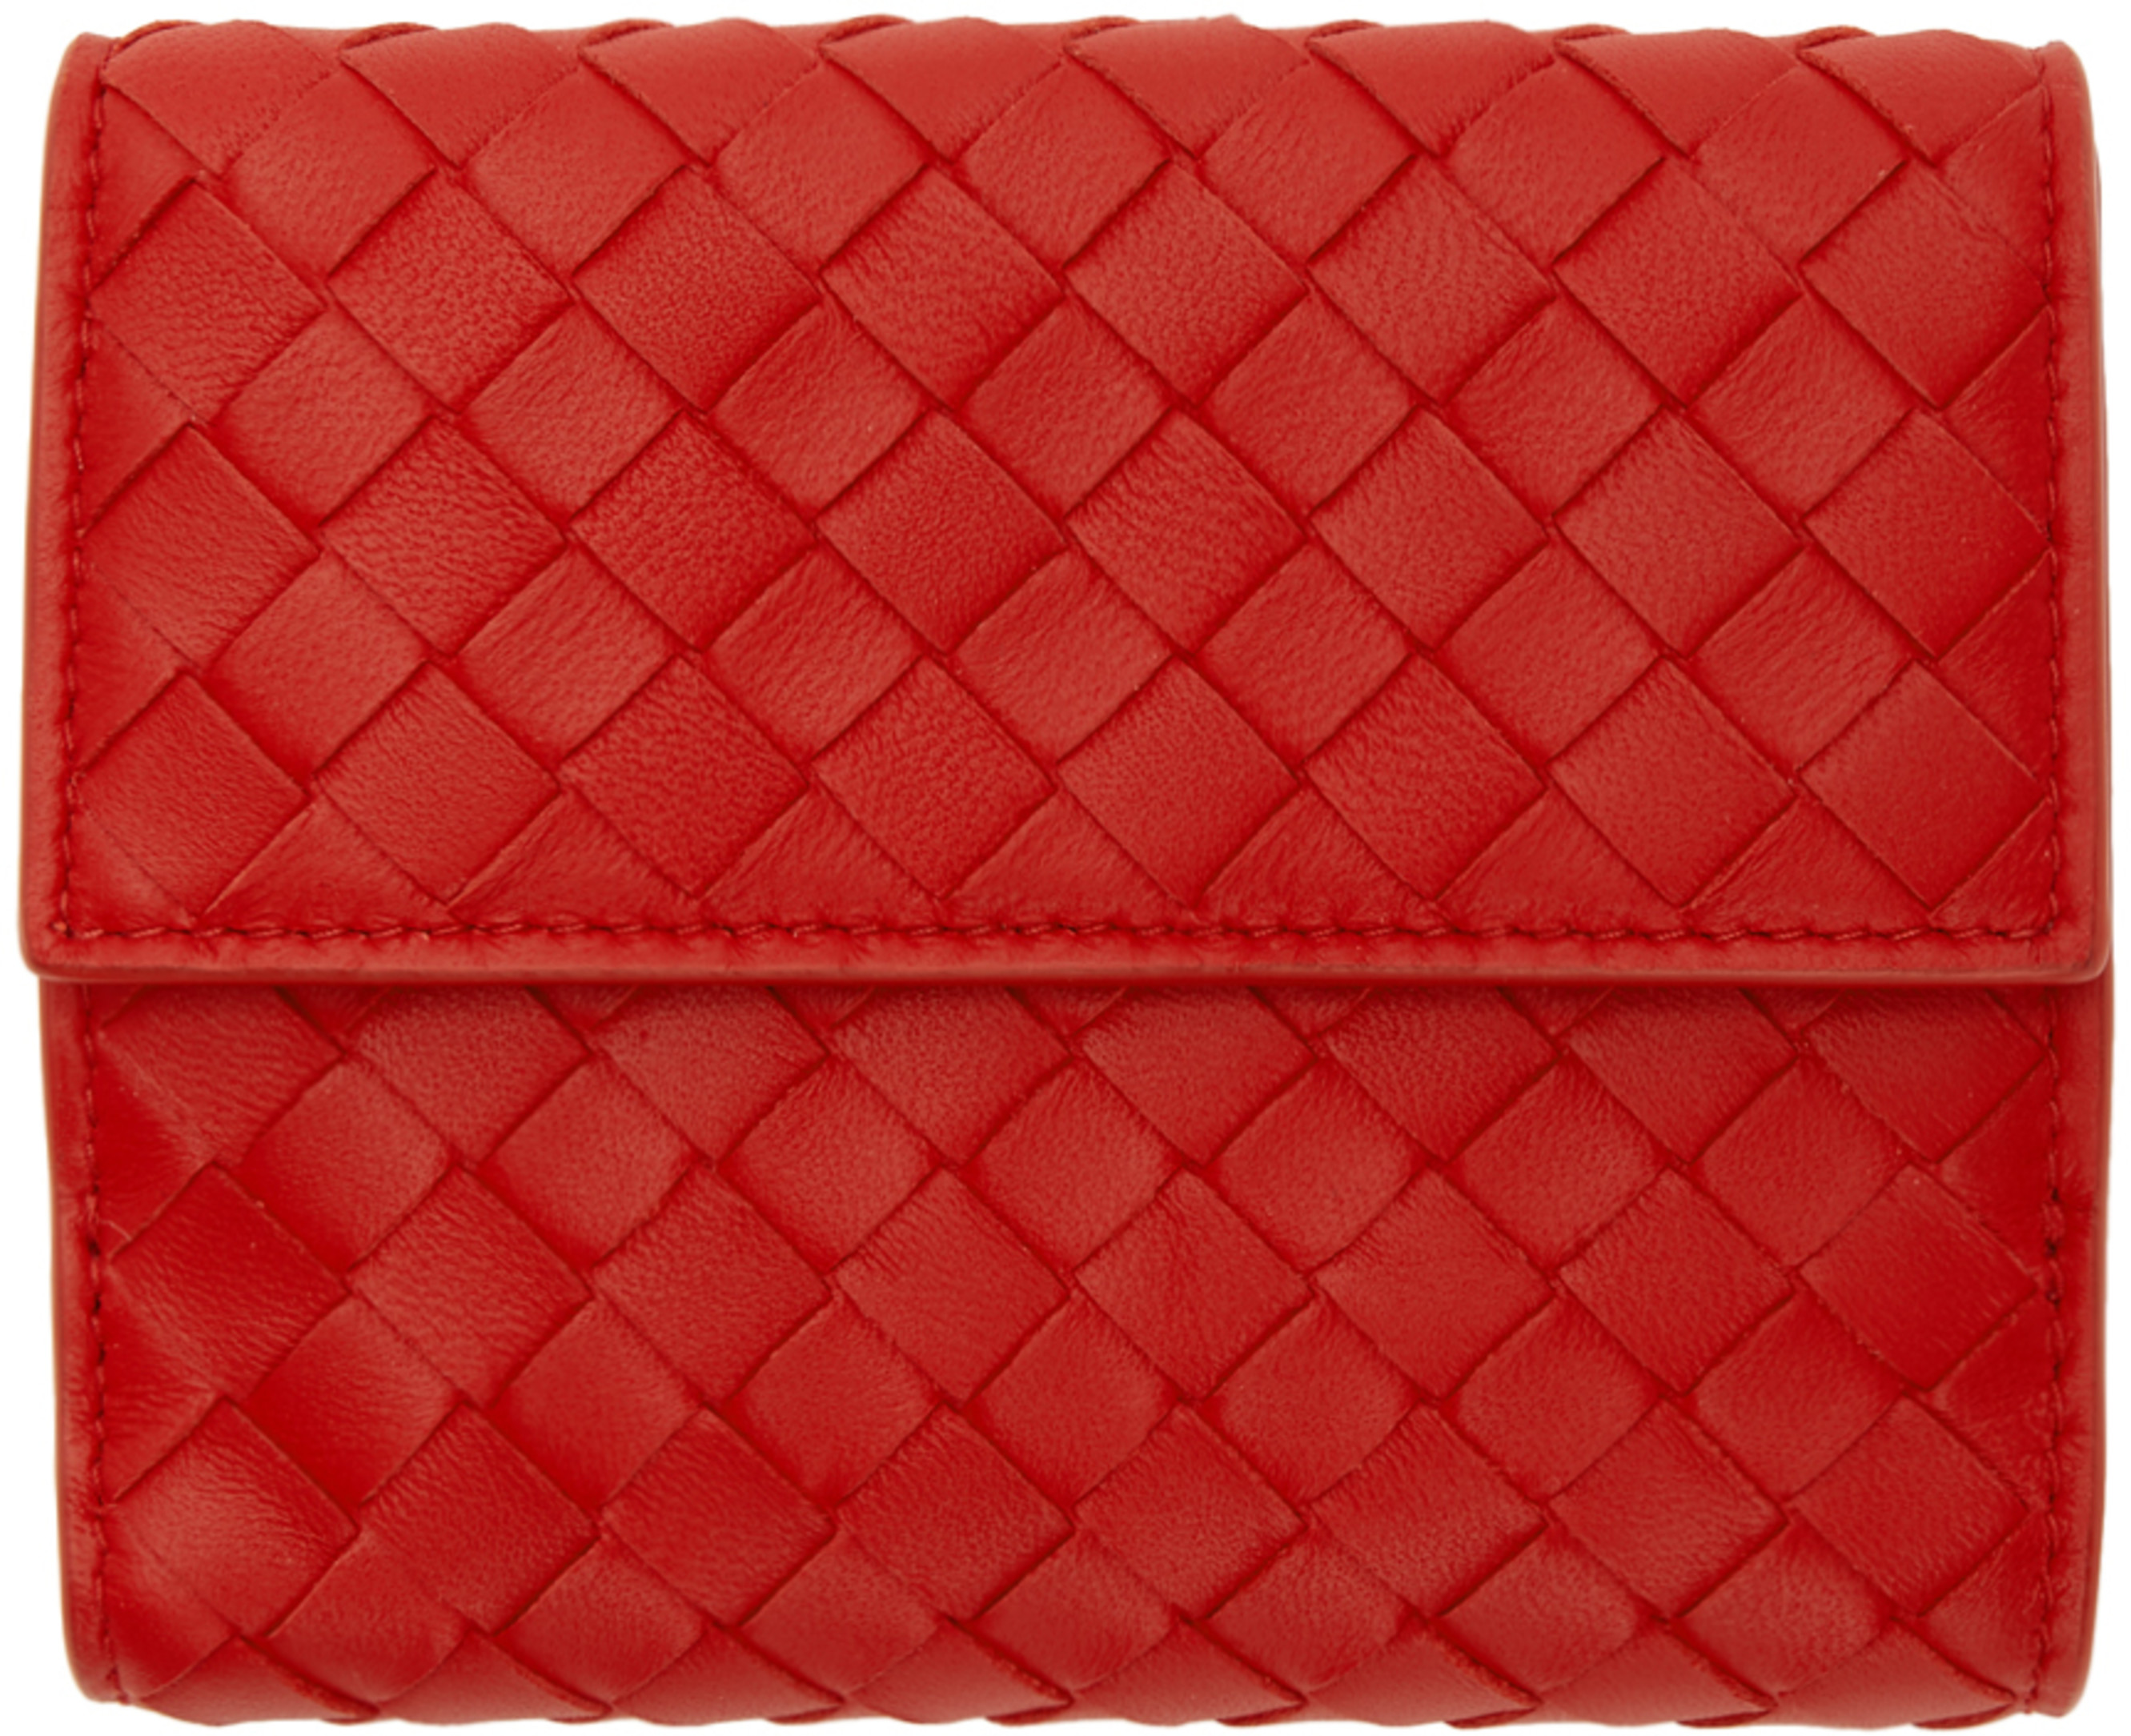 f3ce5b066b67 Designer wallets for Women | SSENSE